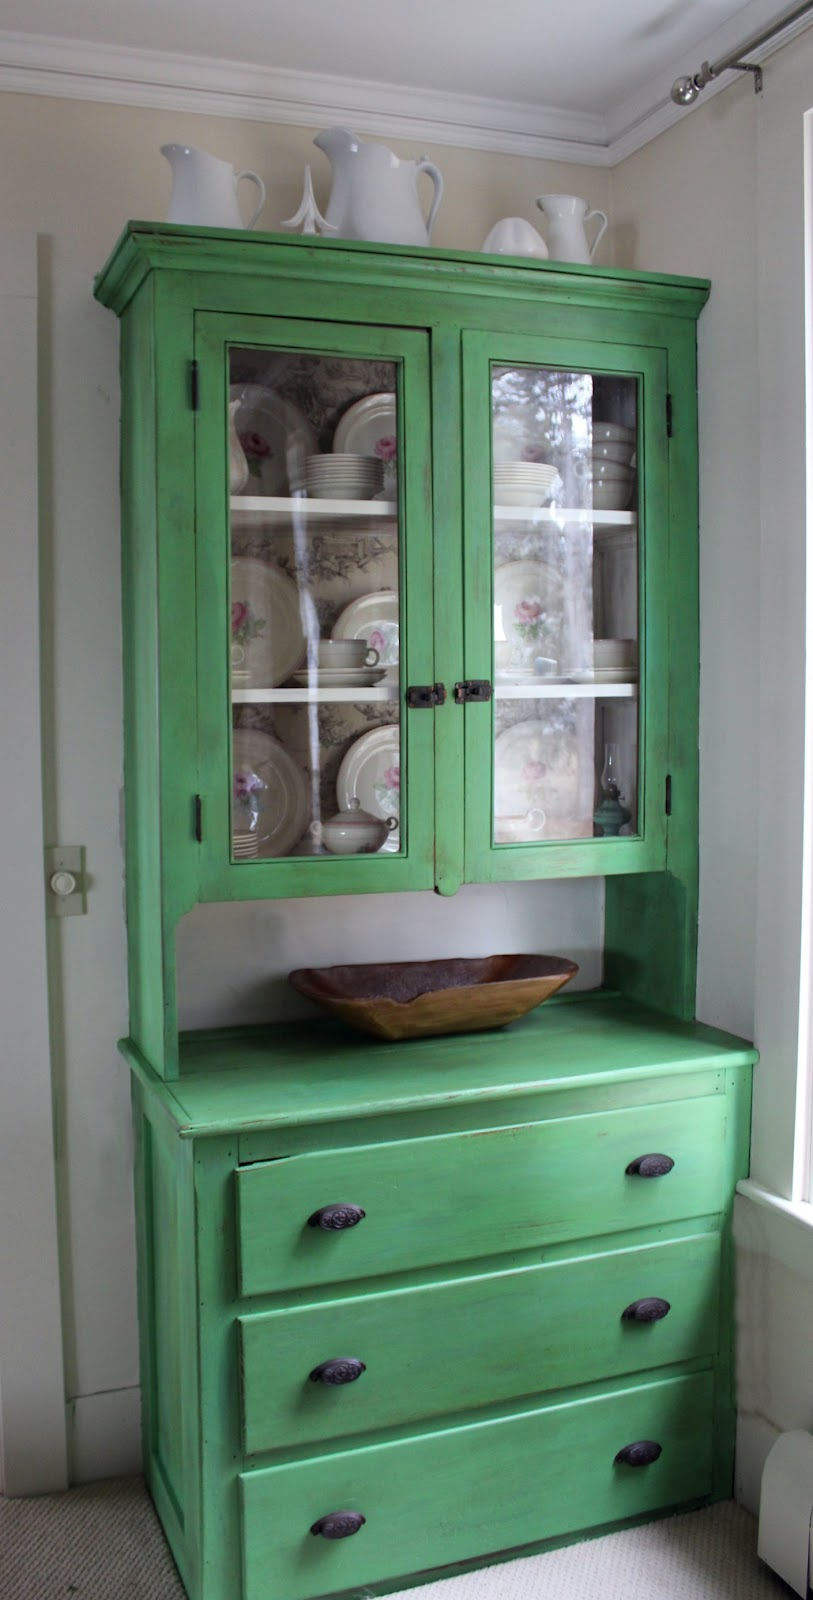 Green Painted Furniture Awesome Of Annie Sloan Chalk Paint Hutch with Green Image